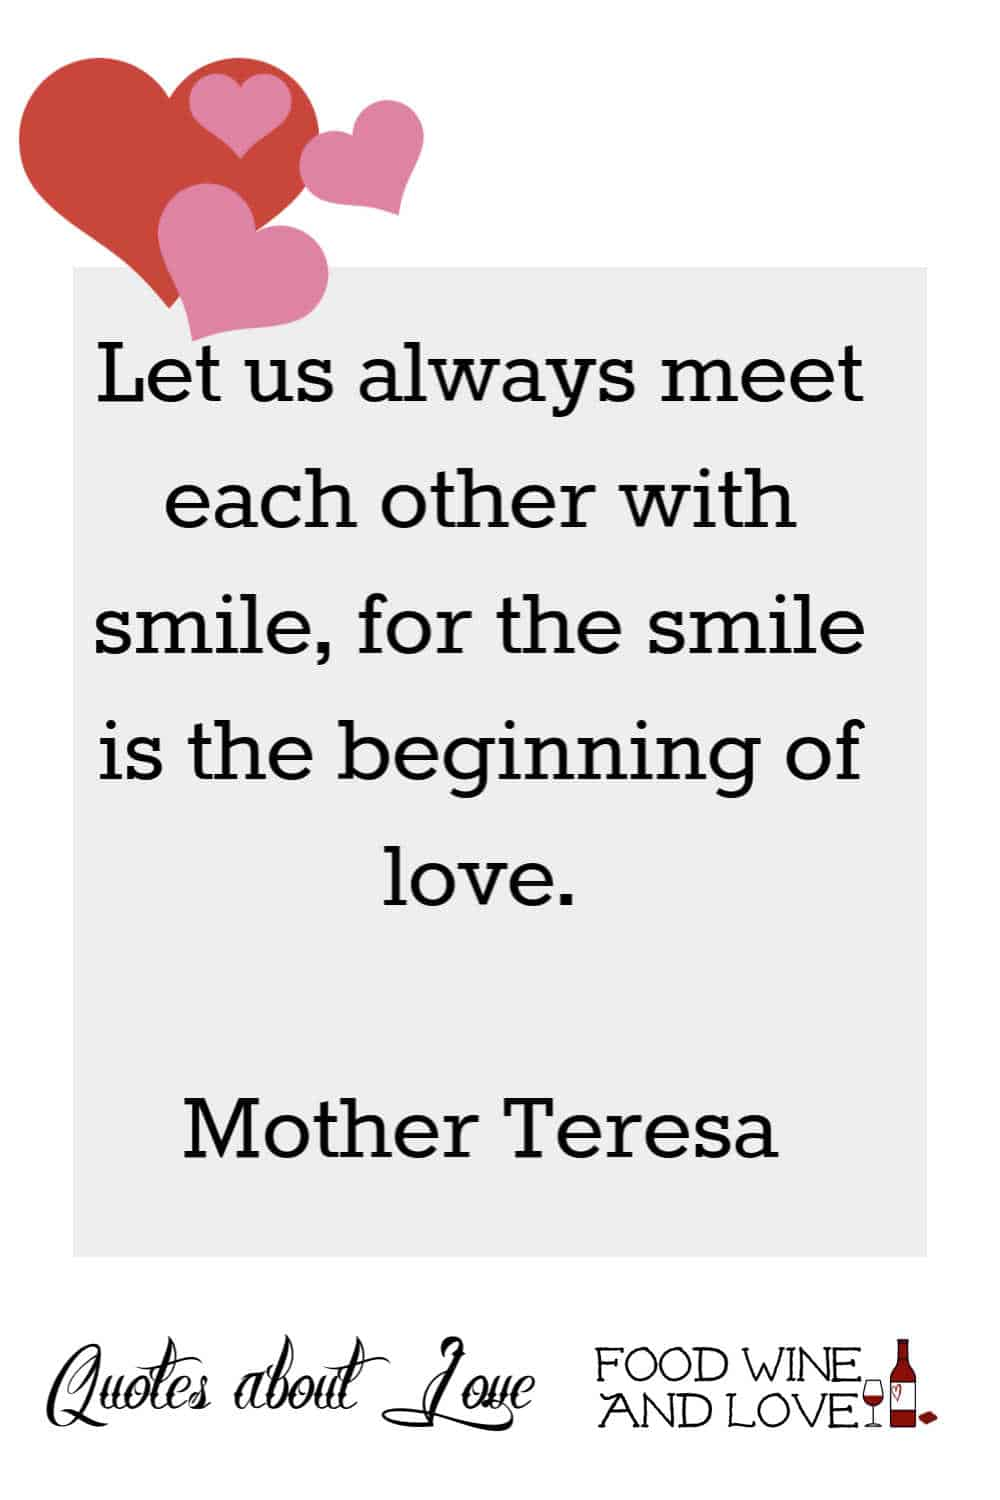 Let us always meet each other with smile, for the smile is the beginning of love.  Mother Teresa